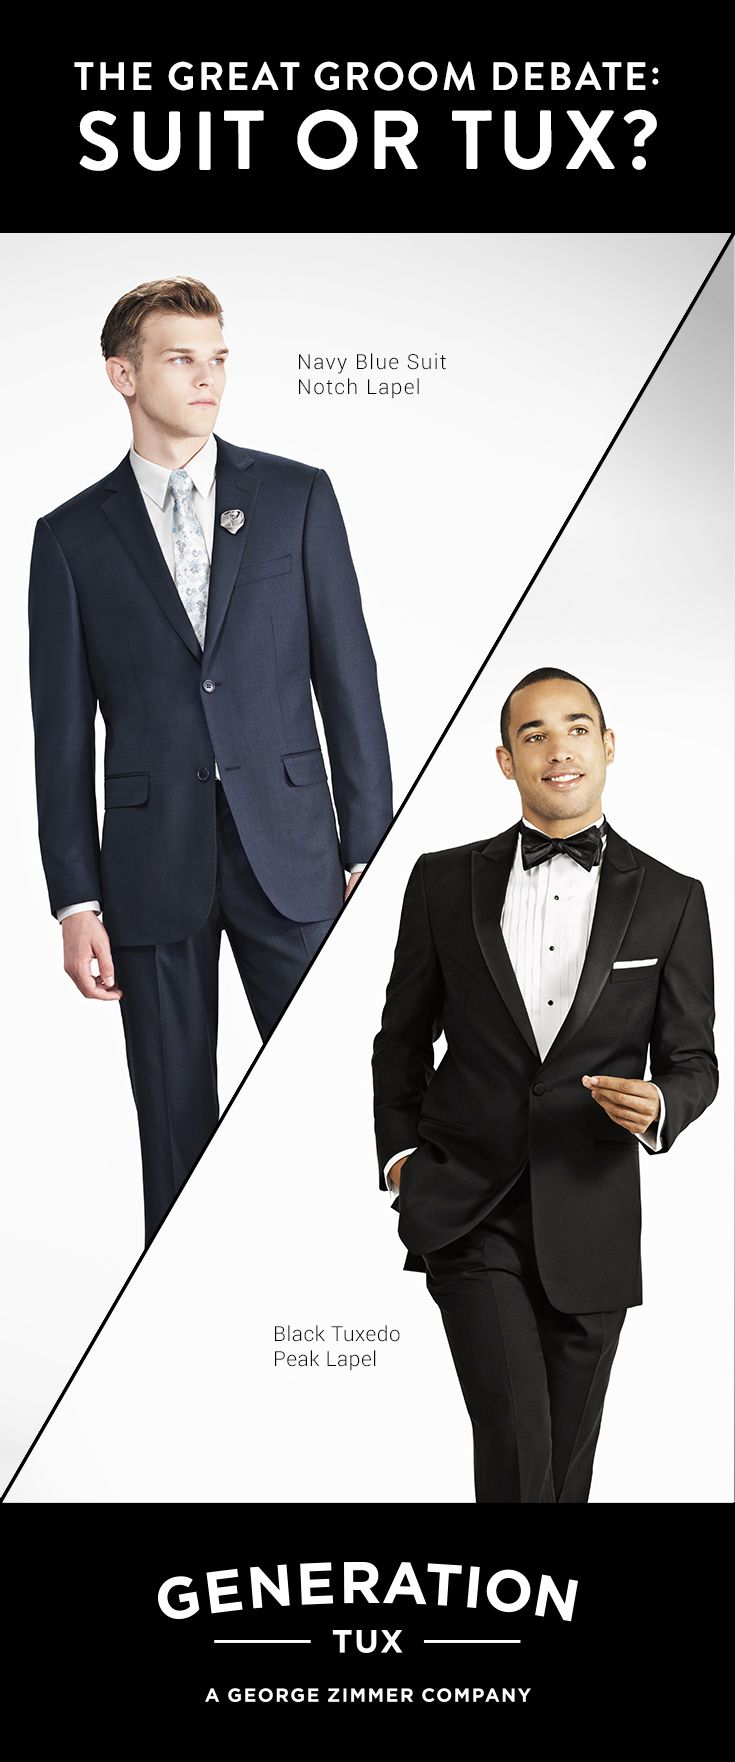 Generation Tux has reinvented the black tie experience. We took ...